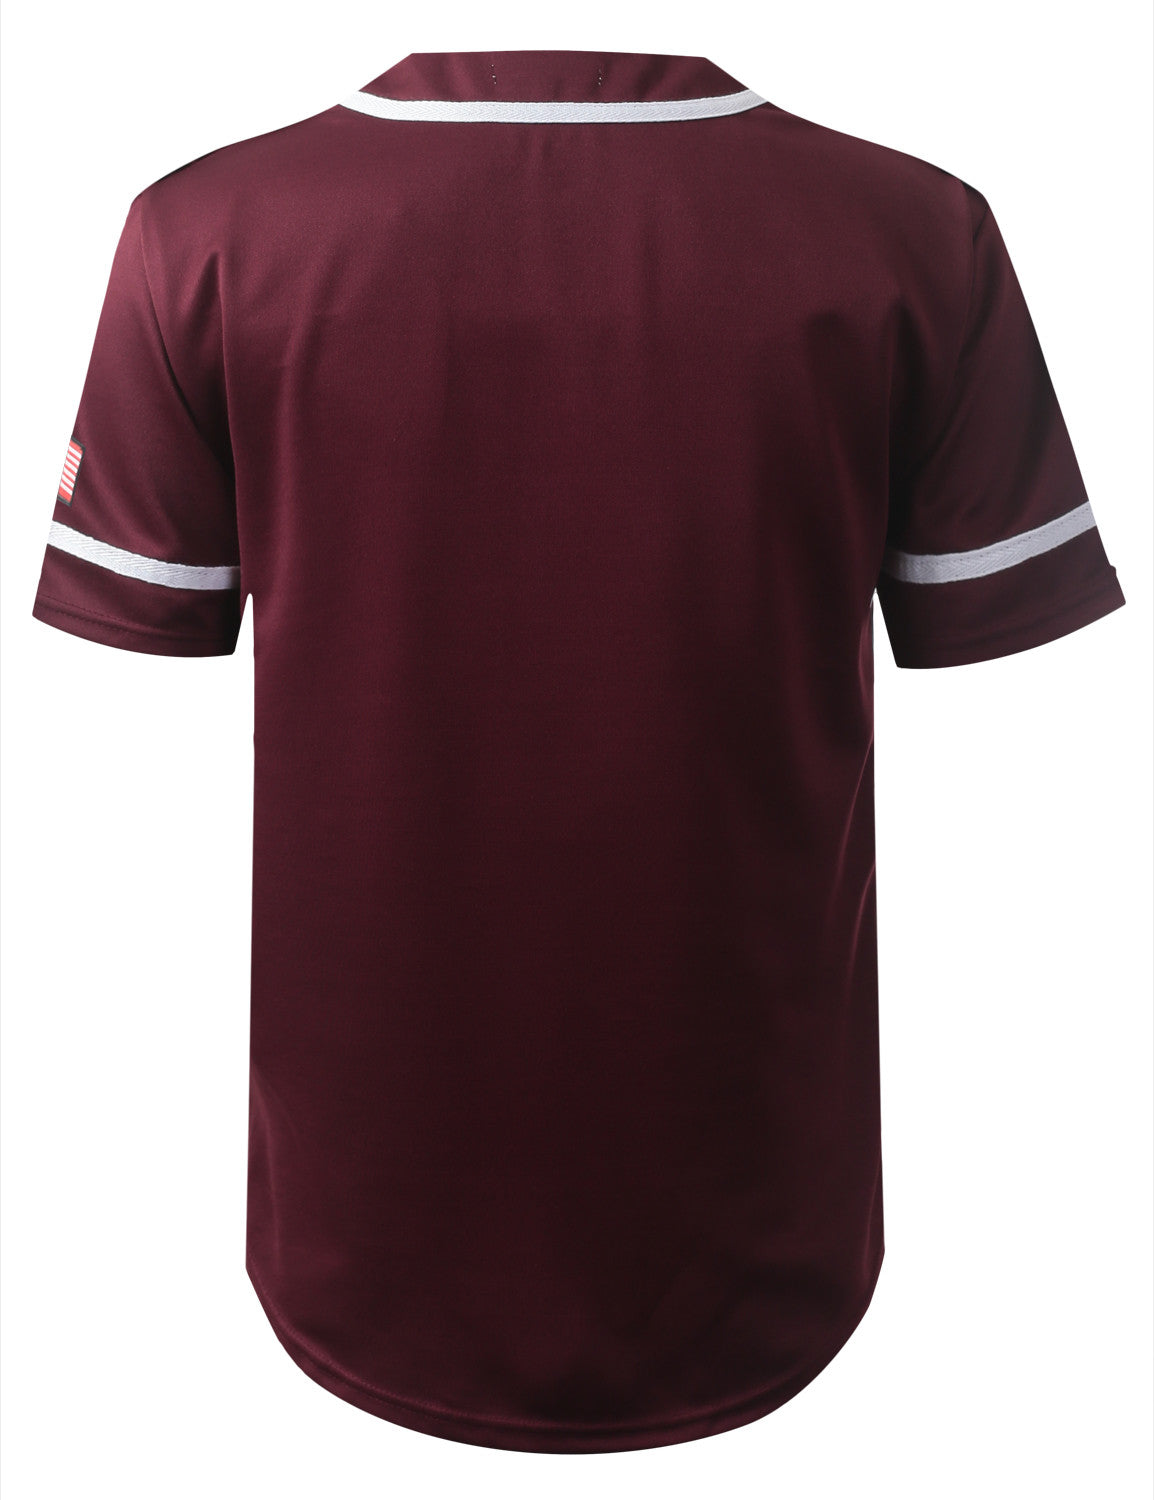 BURGUNDY USA Flag Patch Button Down Baseball Jersey Shirts- URBANCREWS